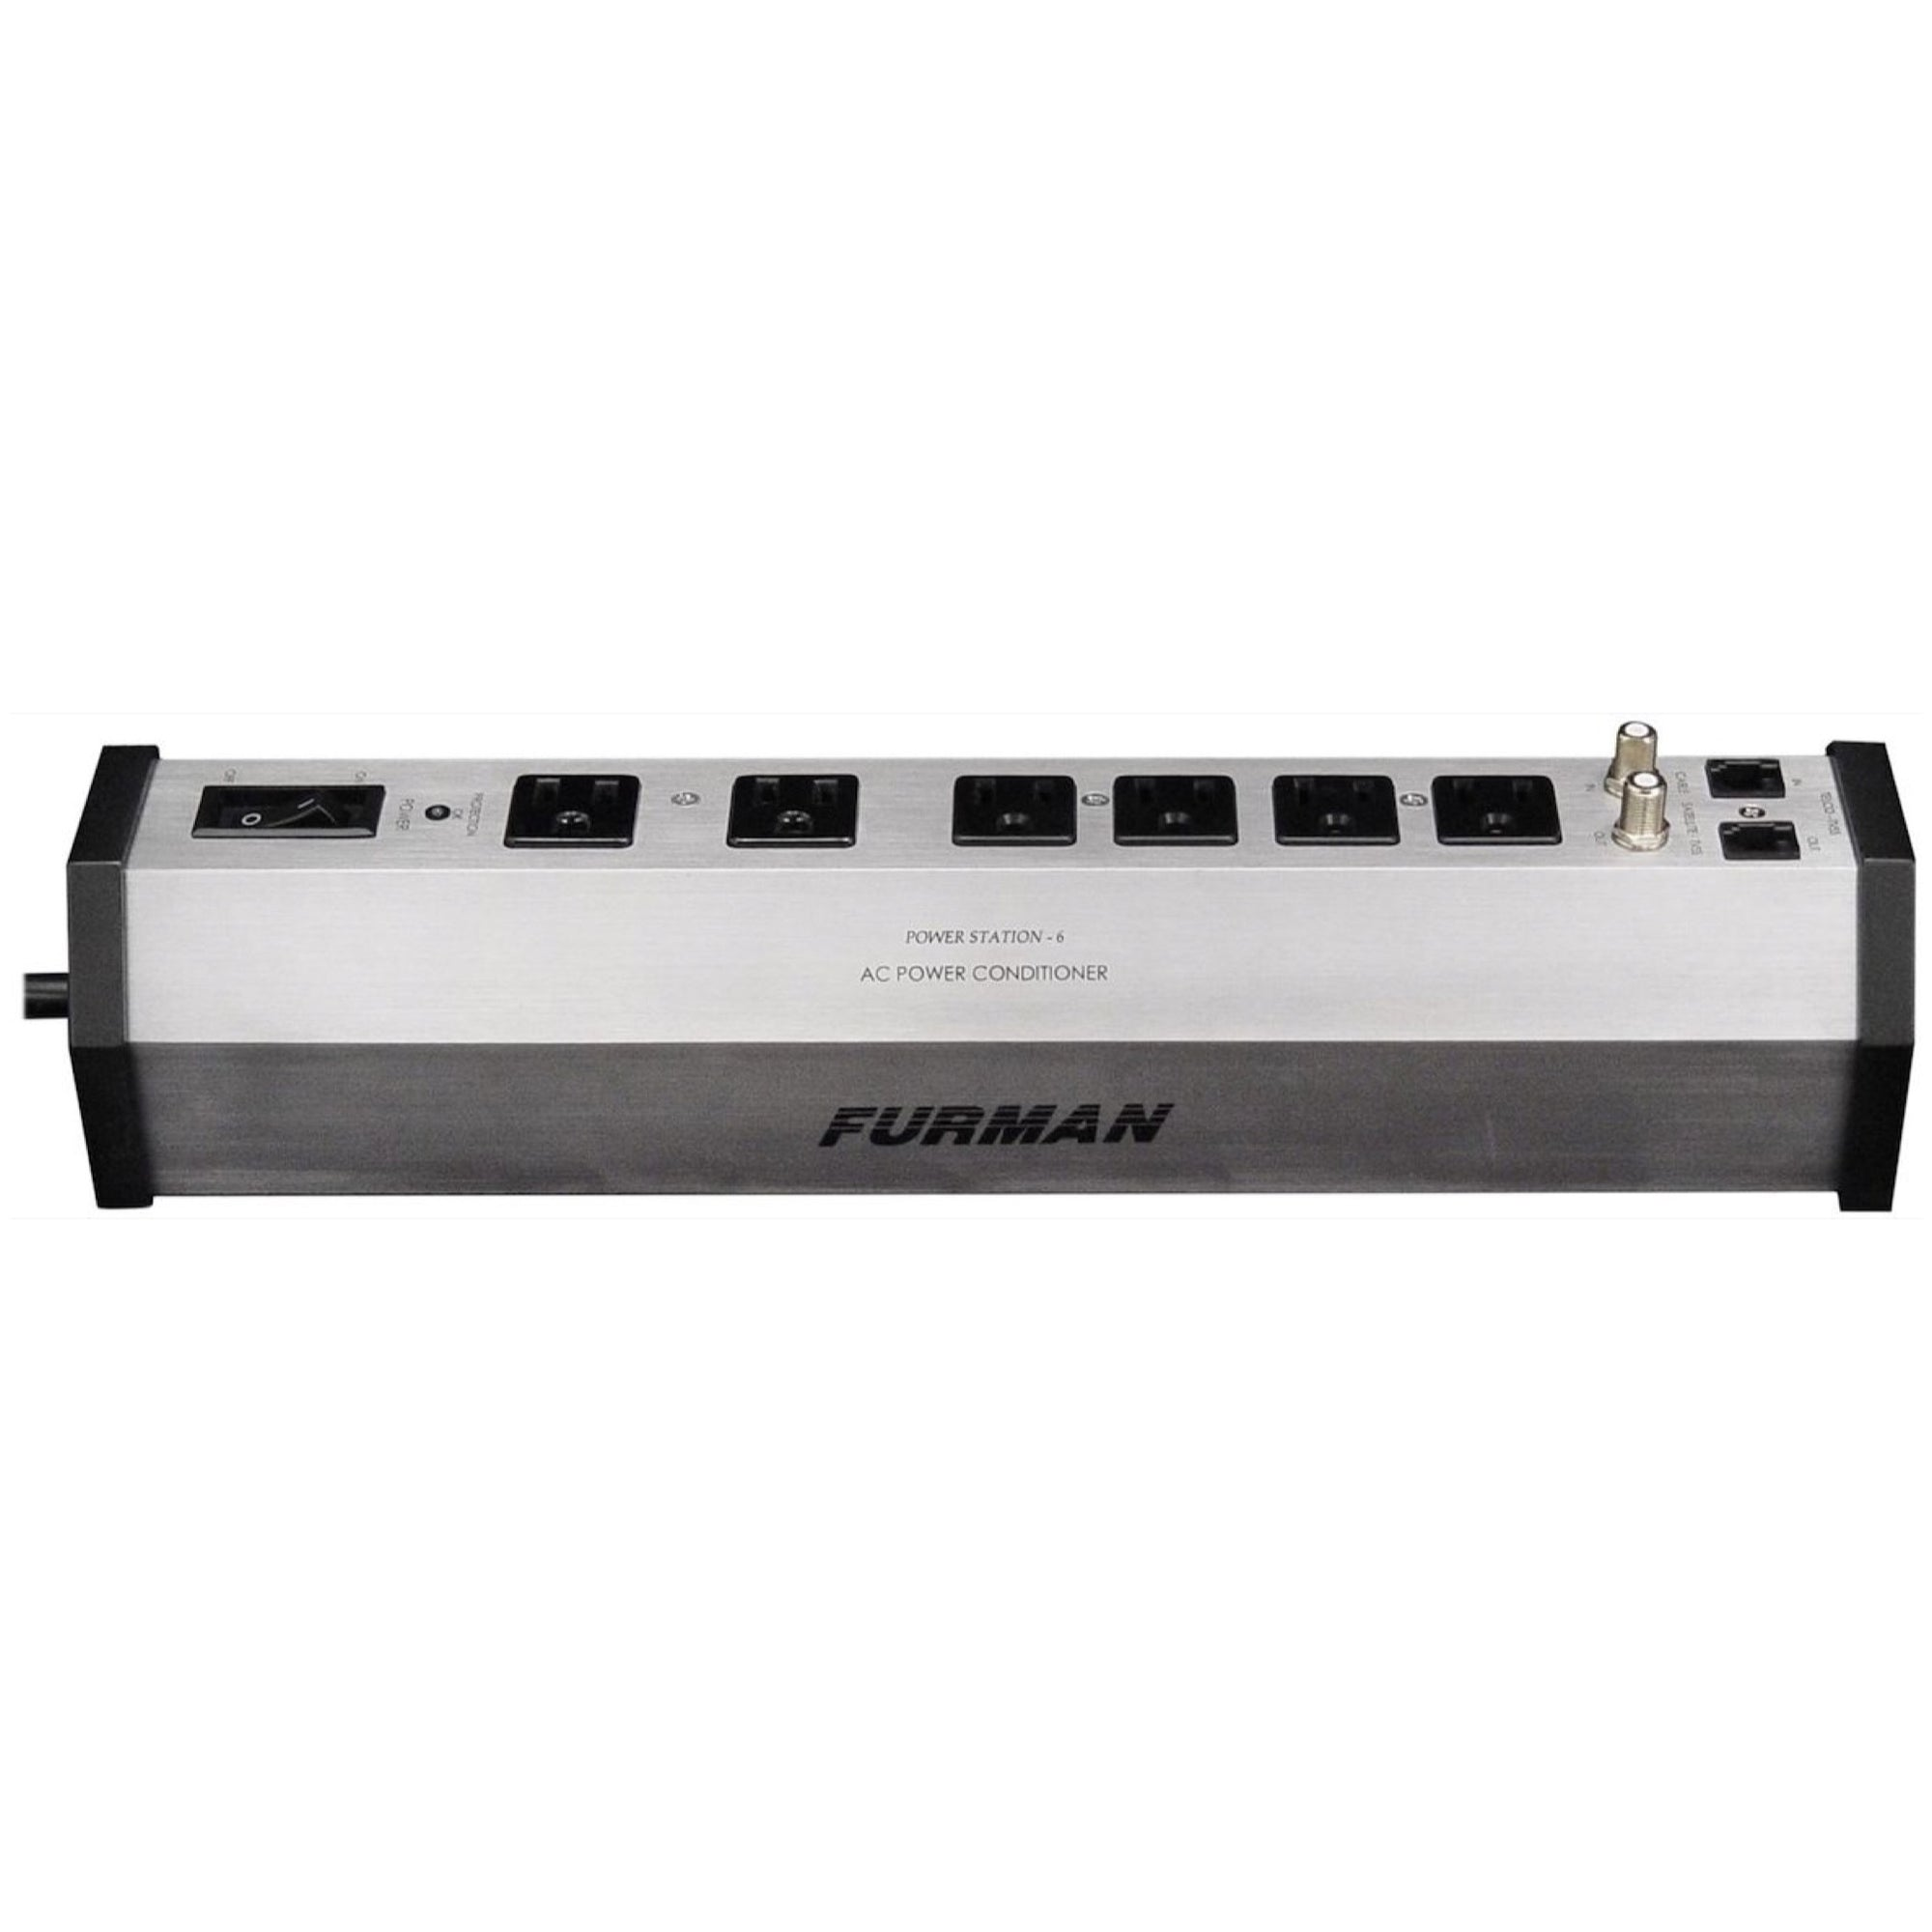 Furman PST-6 Power Station AC Power Conditioner